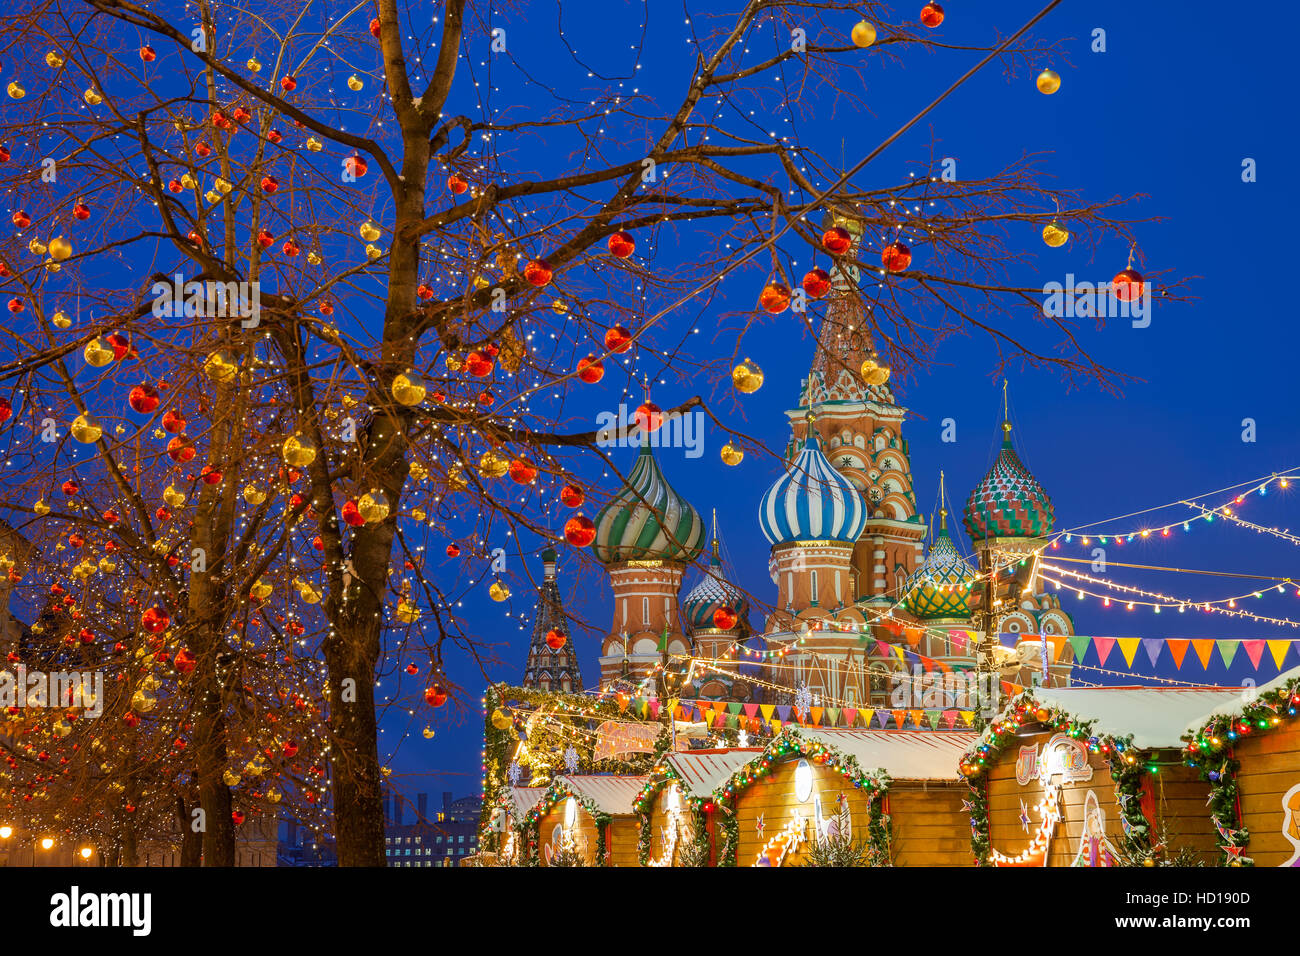 Christmas decorations at the Red Square with St. Basils Cathedral on the background, Moscow, Russia - Stock Image